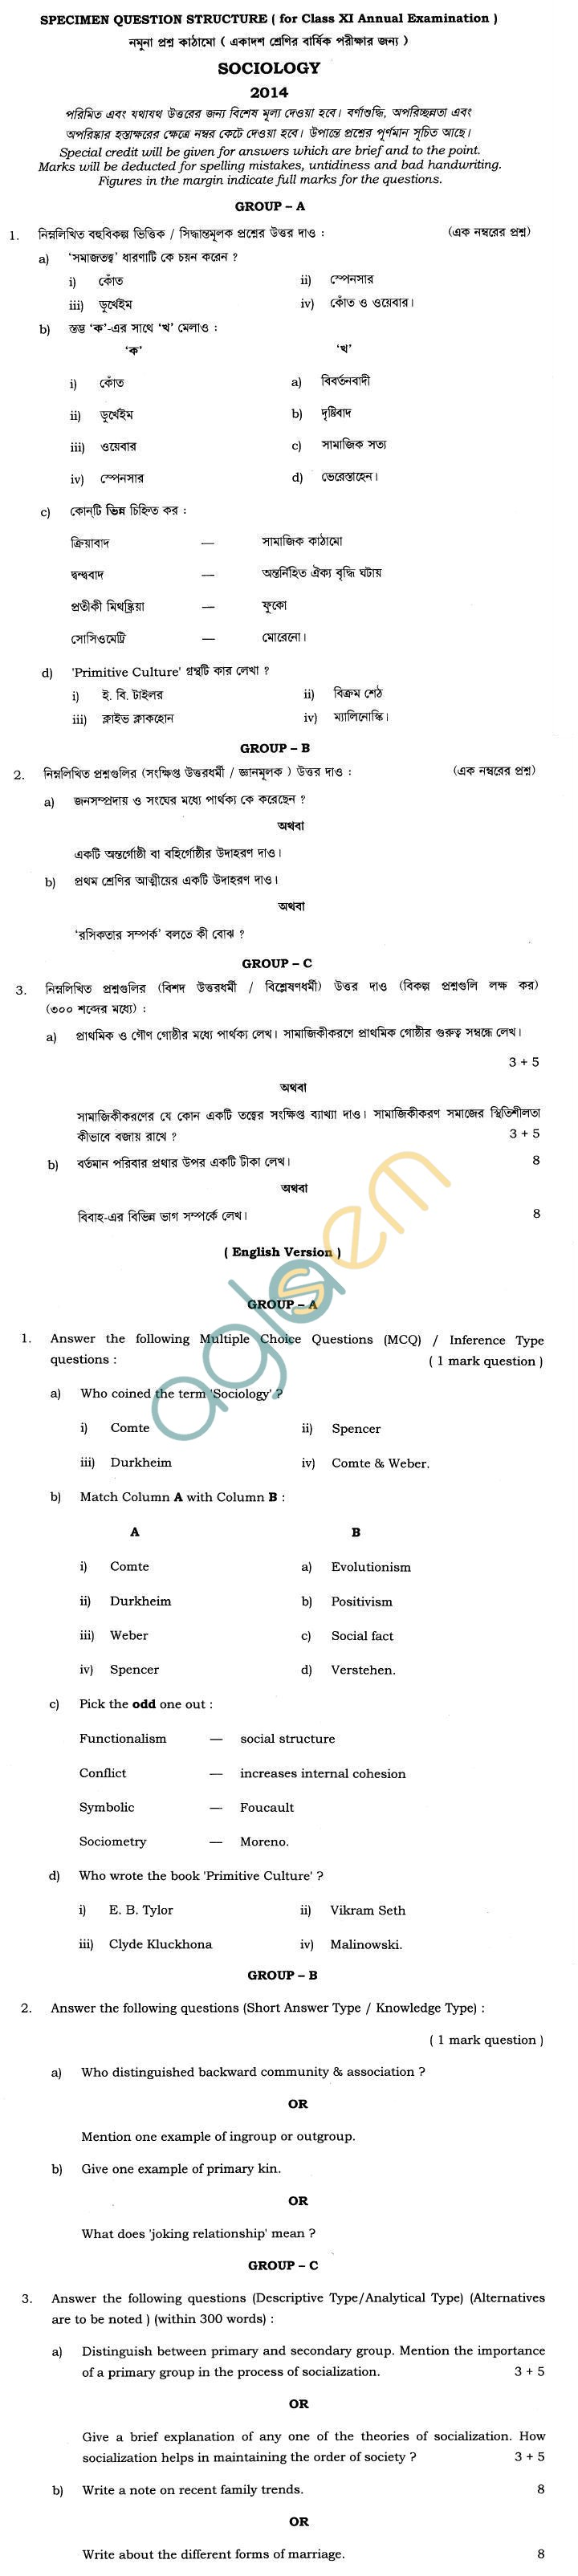 West Bengal Board Sample Question Paper for Class 11 - Sociology